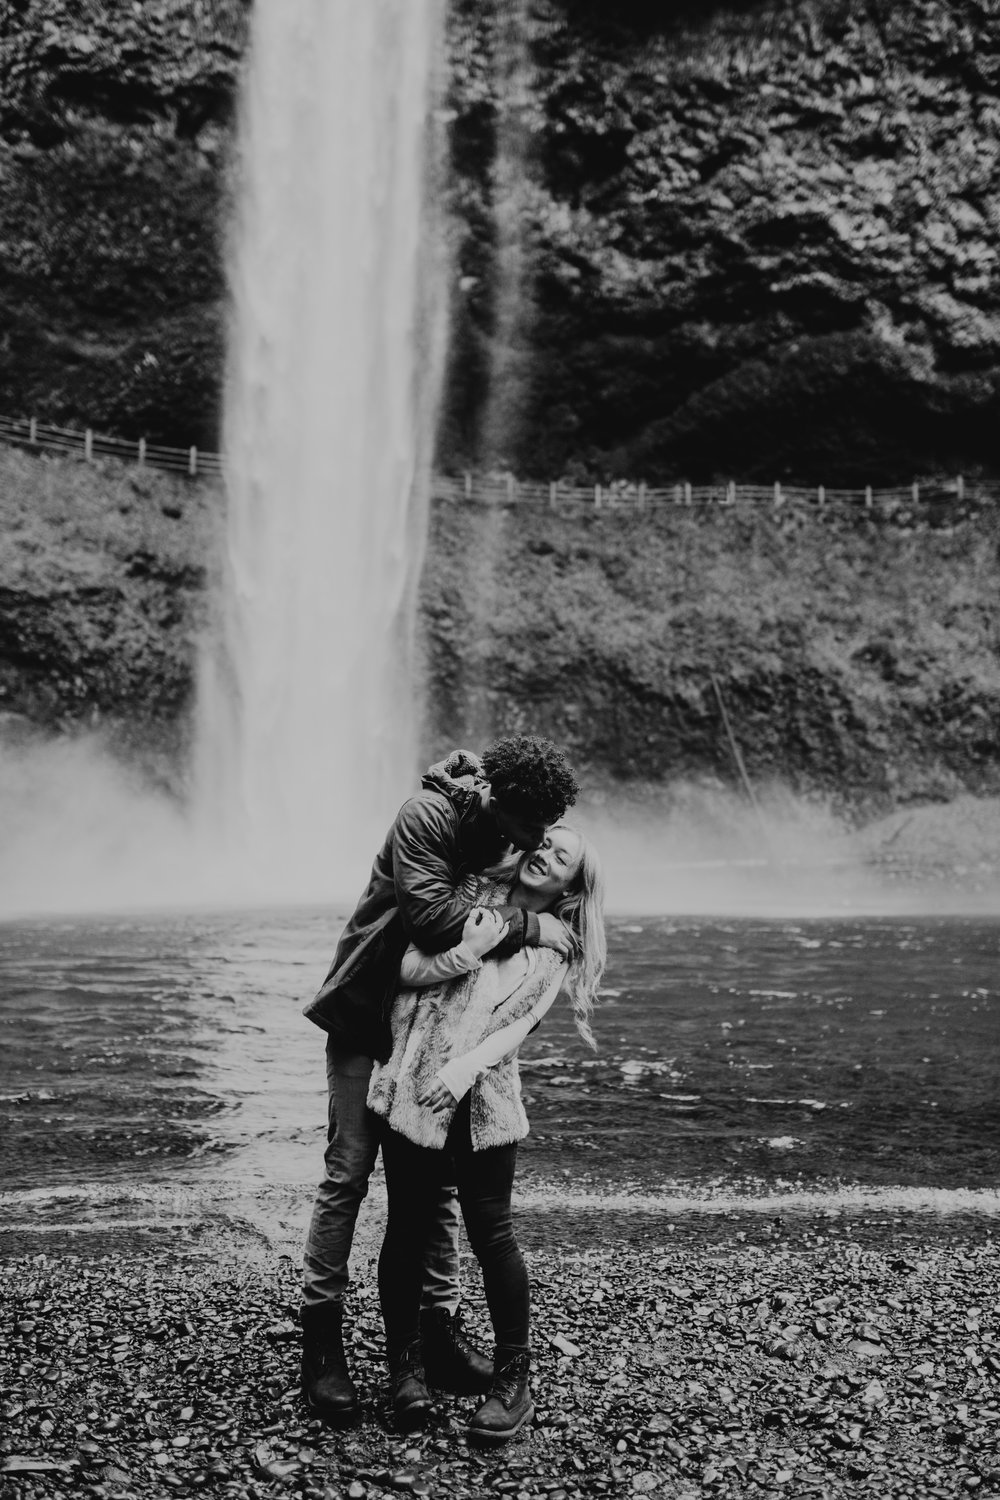 oregon+washinton+wedding+photographer05.jpg